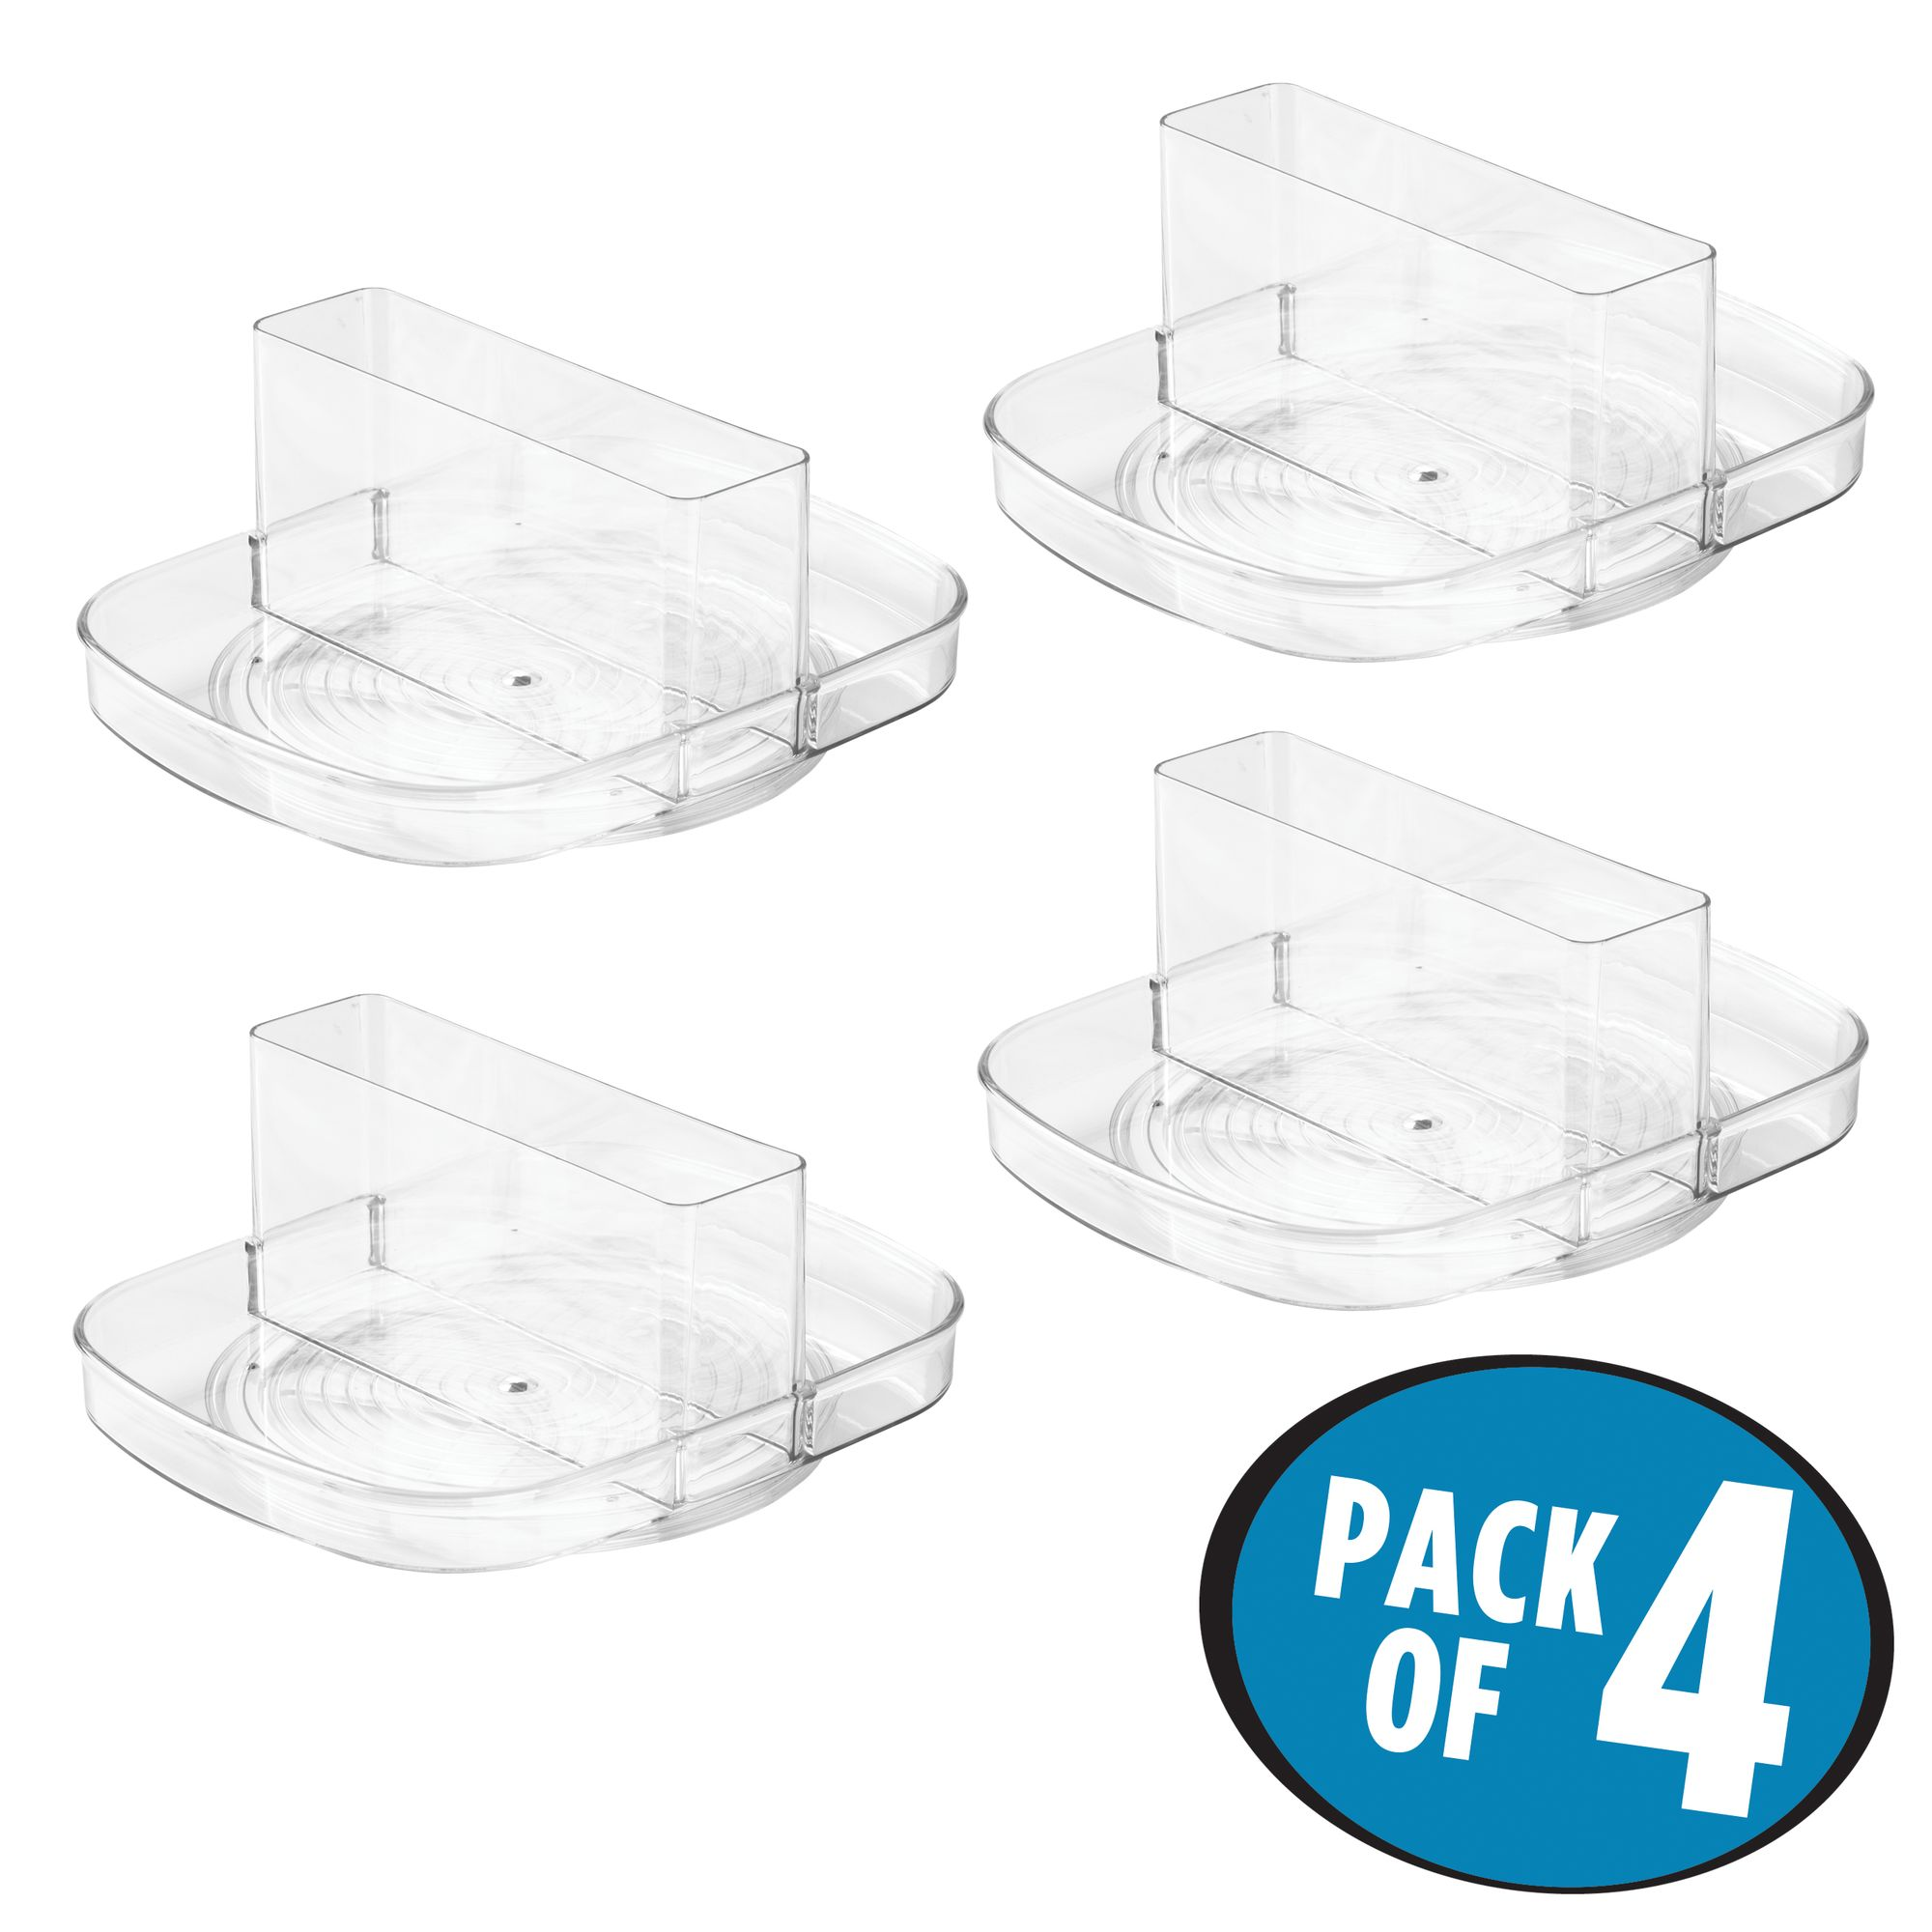 InterDesign Linus Lazy Susan Turntable Napkin and Condiments Holder, Pack of 4